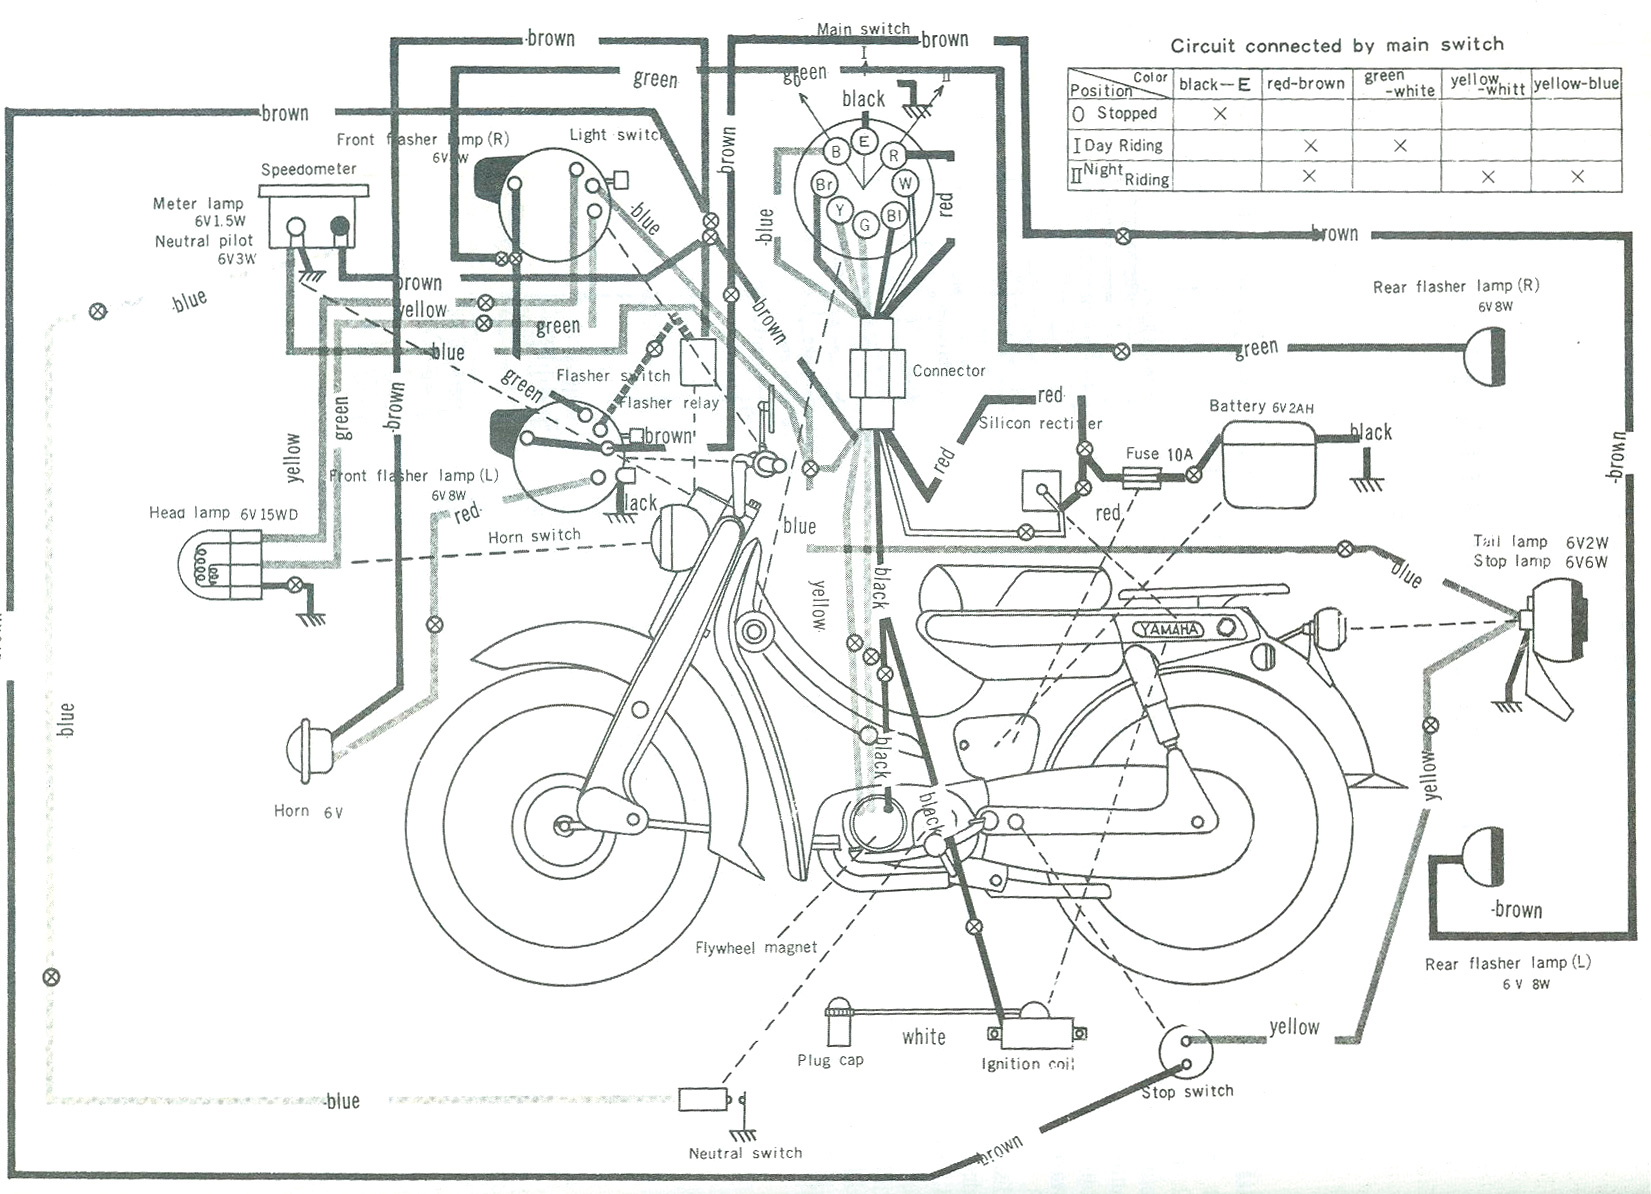 u5e_wiring u5e] motorcycle wiring schematics diagram yamaha ct175 wiring diagram at eliteediting.co